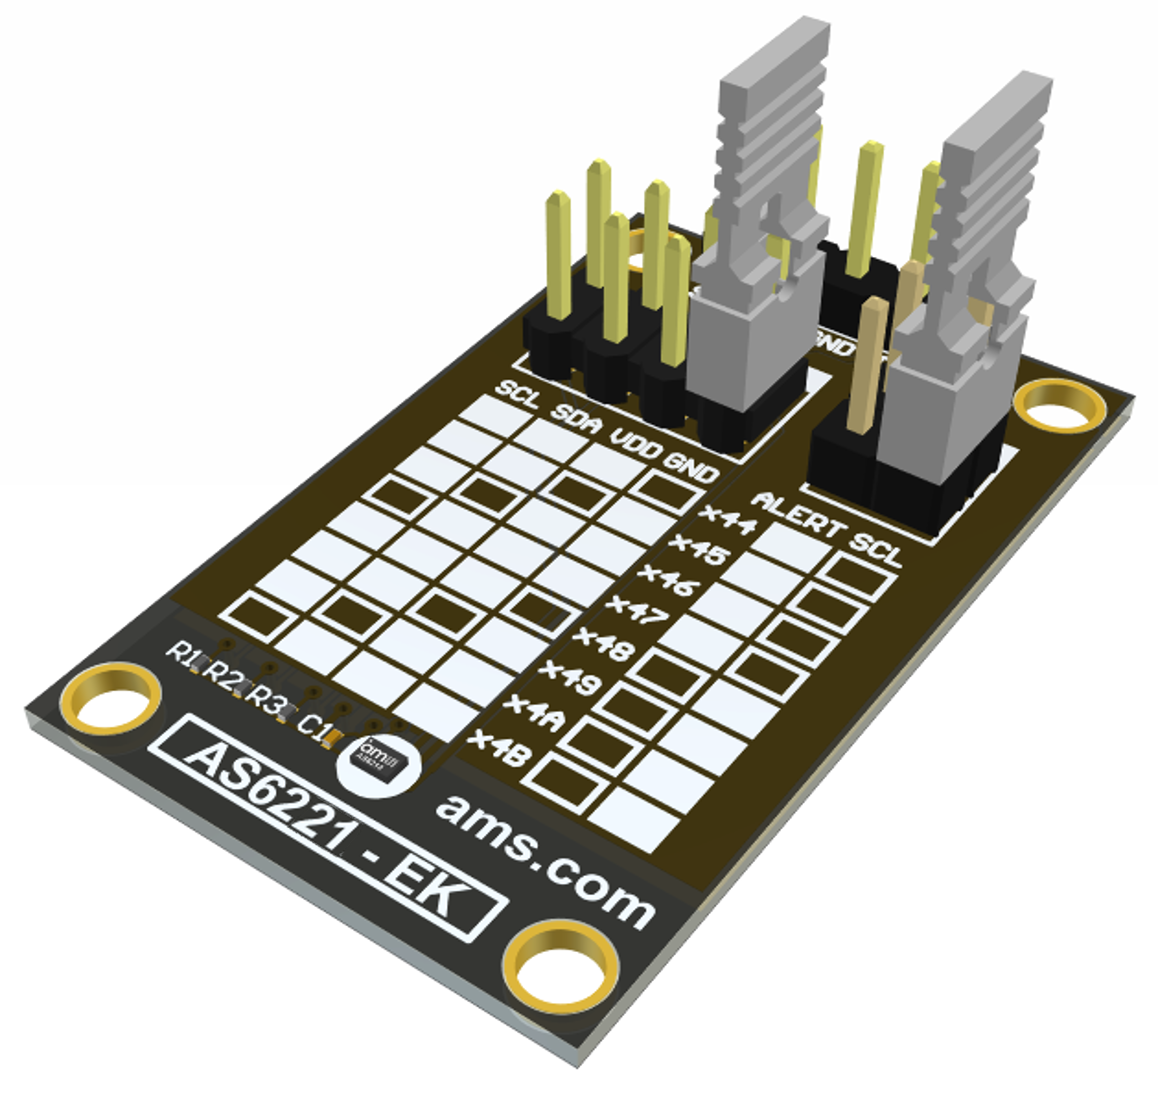 AS6221 Eval Kit Board Picture